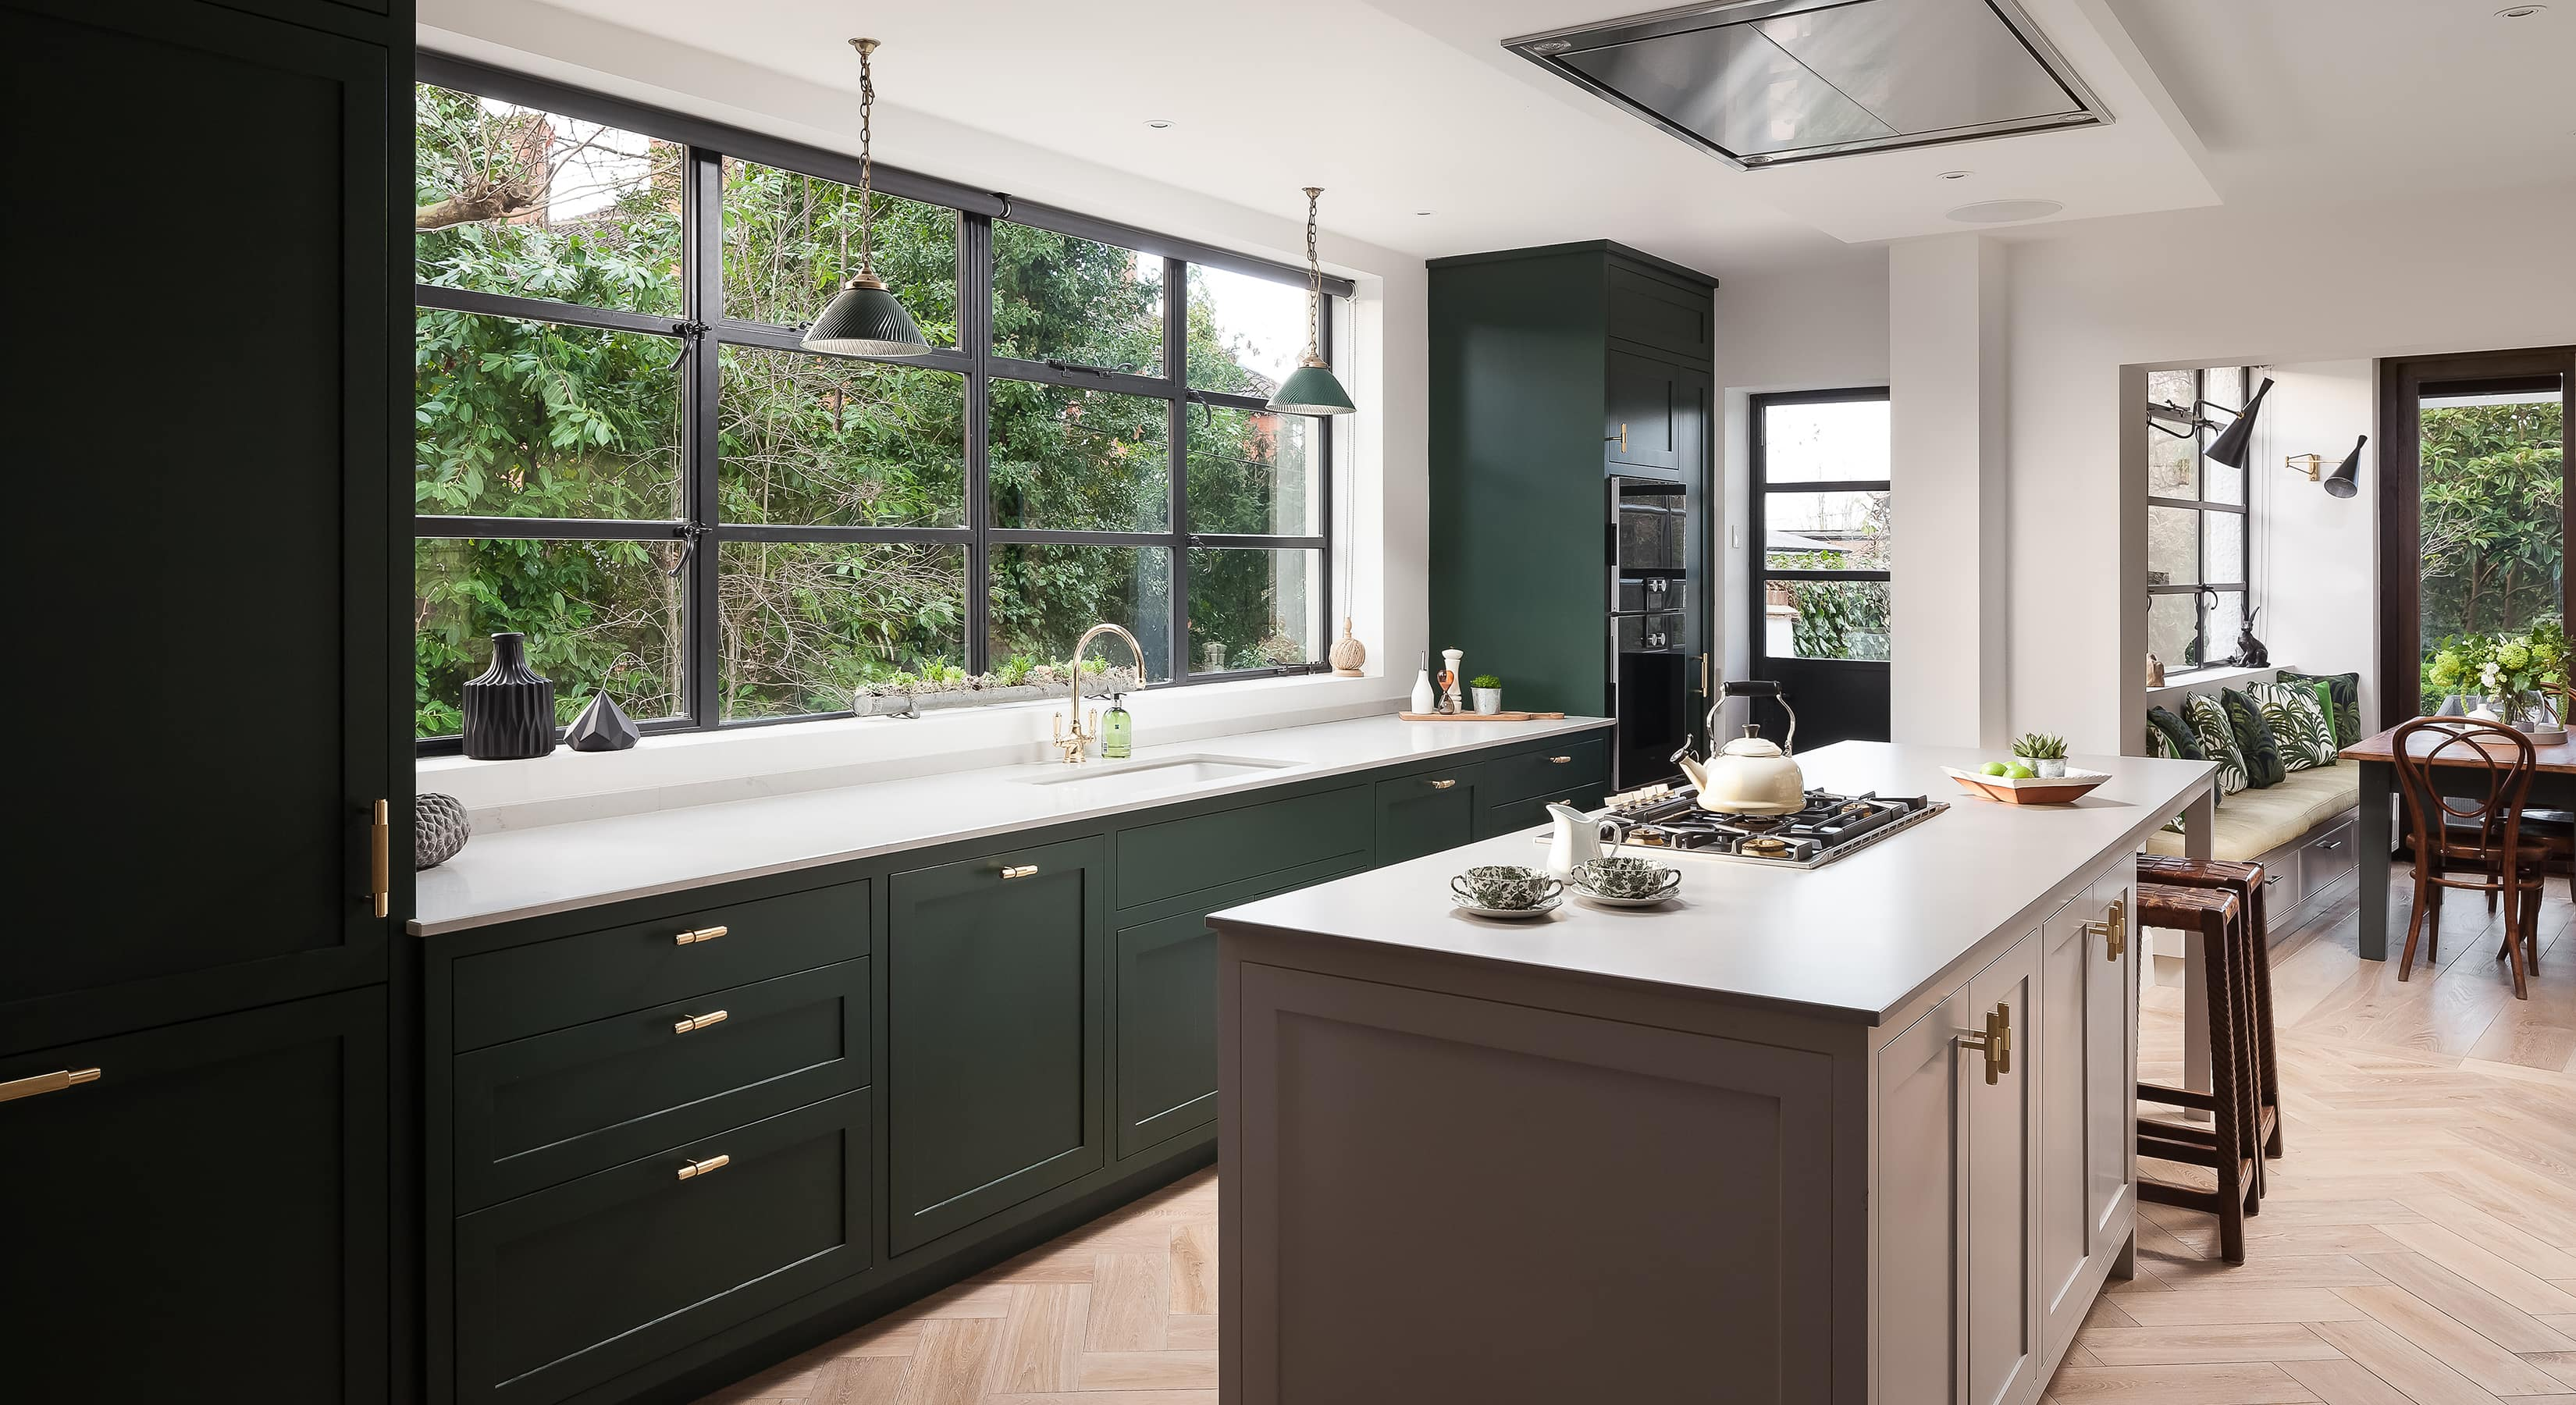 Downs style kitchen extension concept